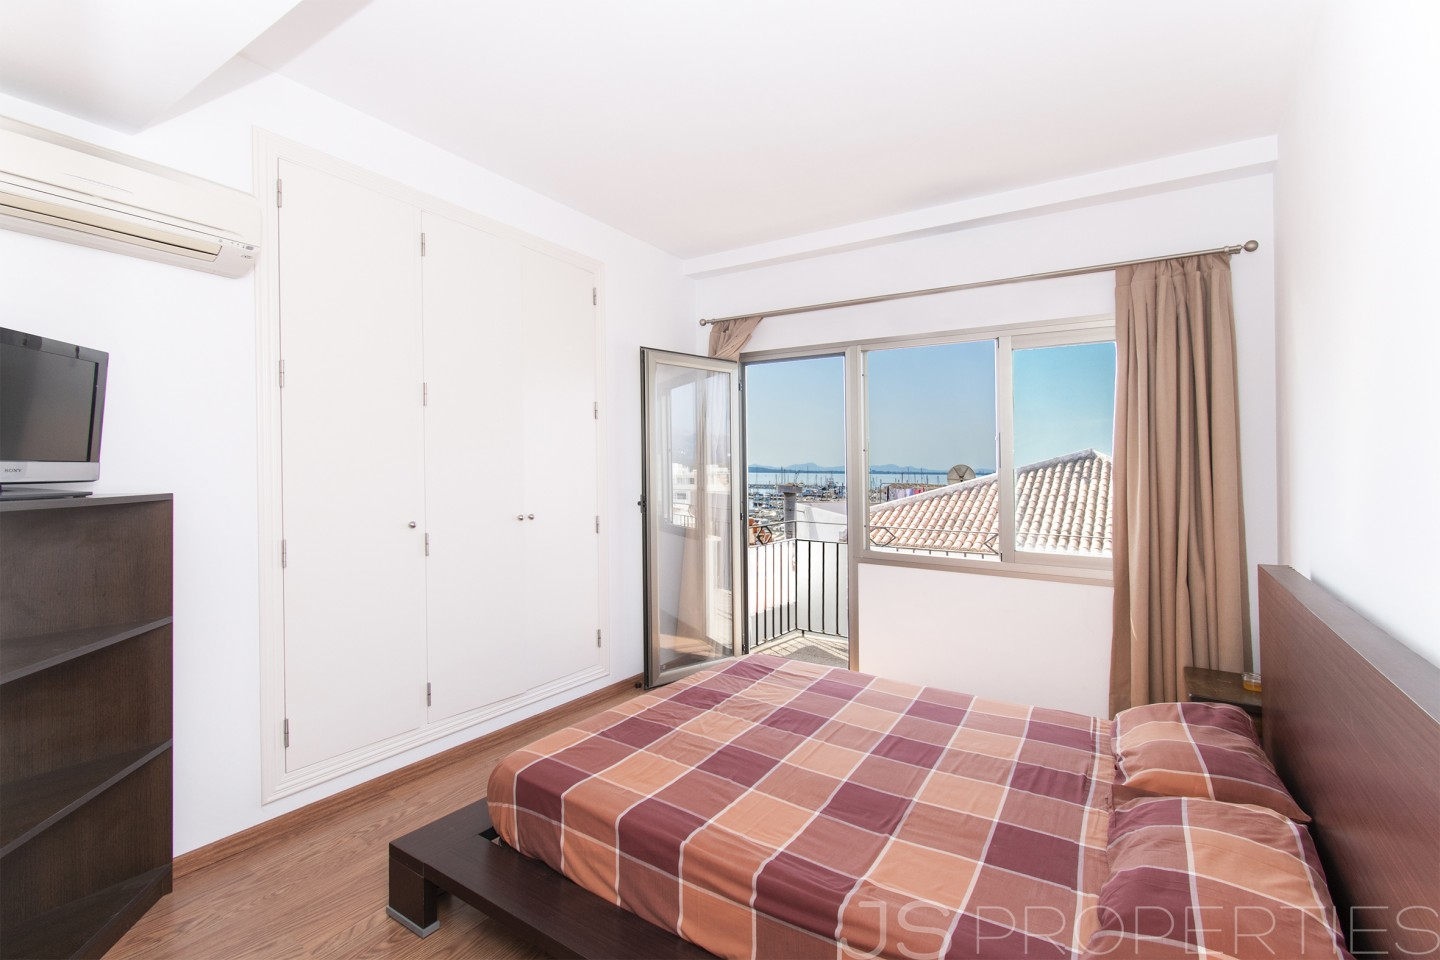 APARTMENT WITH SPECTACULAR VIEWS OF THE SEA AND HARBOUR